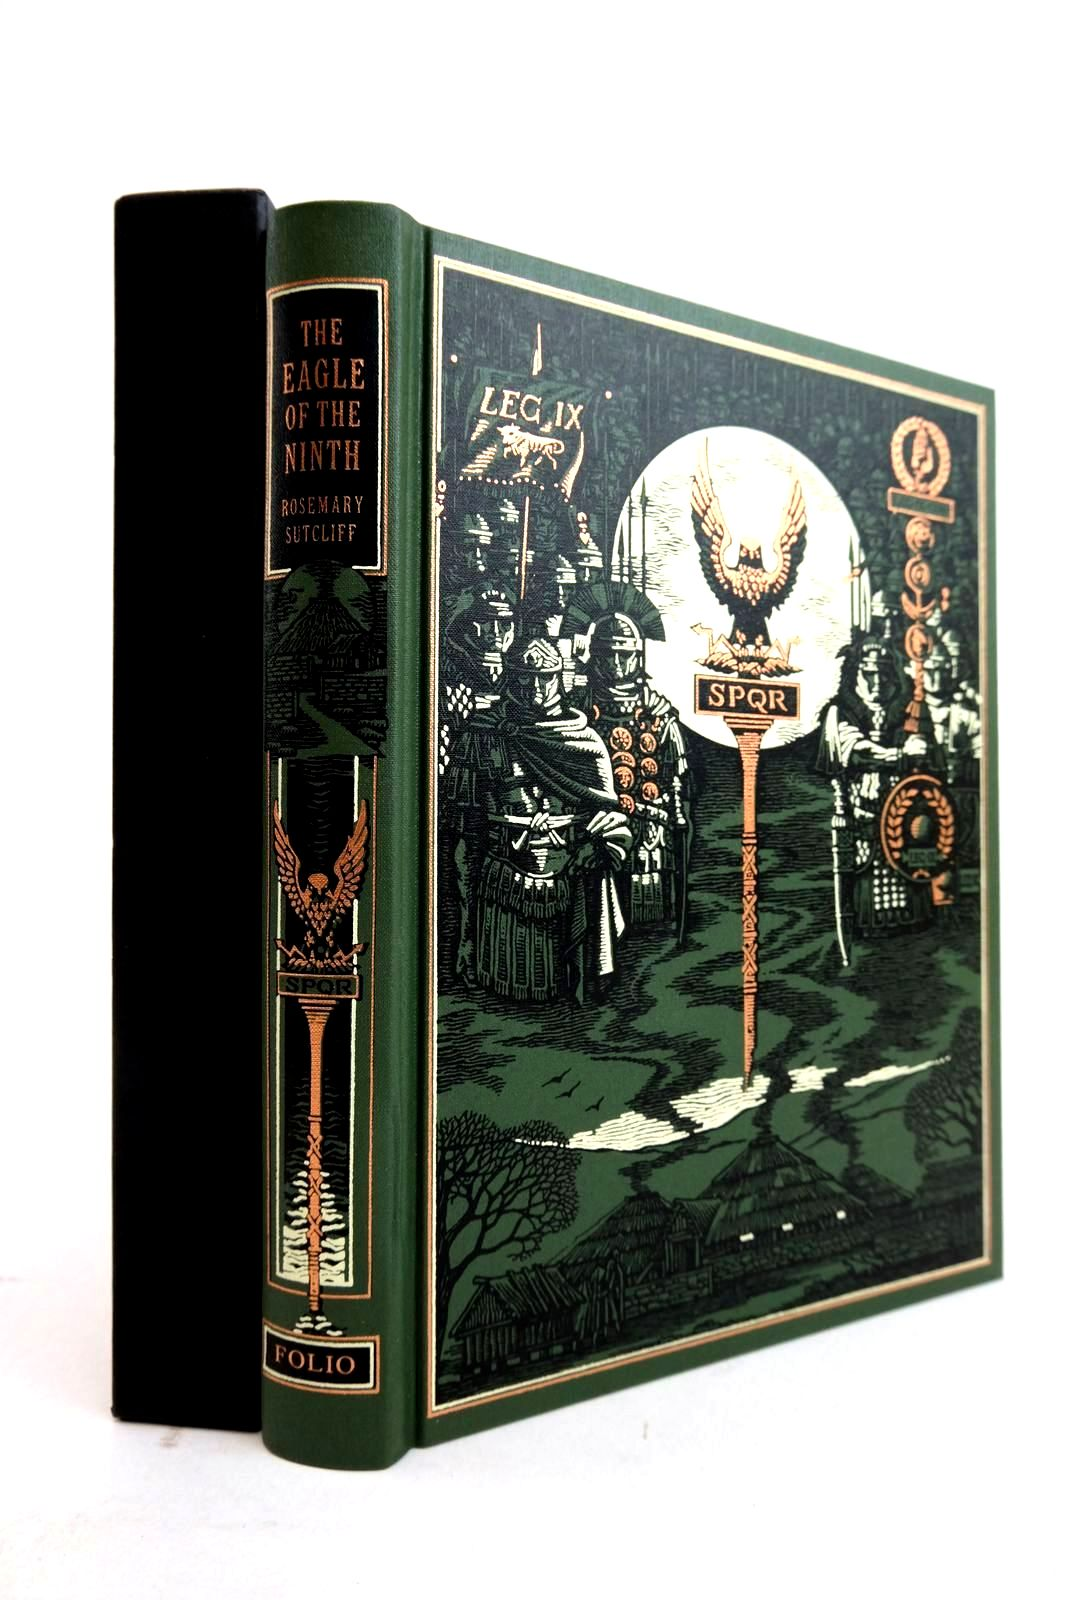 Photo of THE EAGLE OF THE NINTH written by Sutcliff, Rosemary Crossley-Holland, Kevin illustrated by Pisarev, Roman published by Folio Society (STOCK CODE: 2134415)  for sale by Stella & Rose's Books